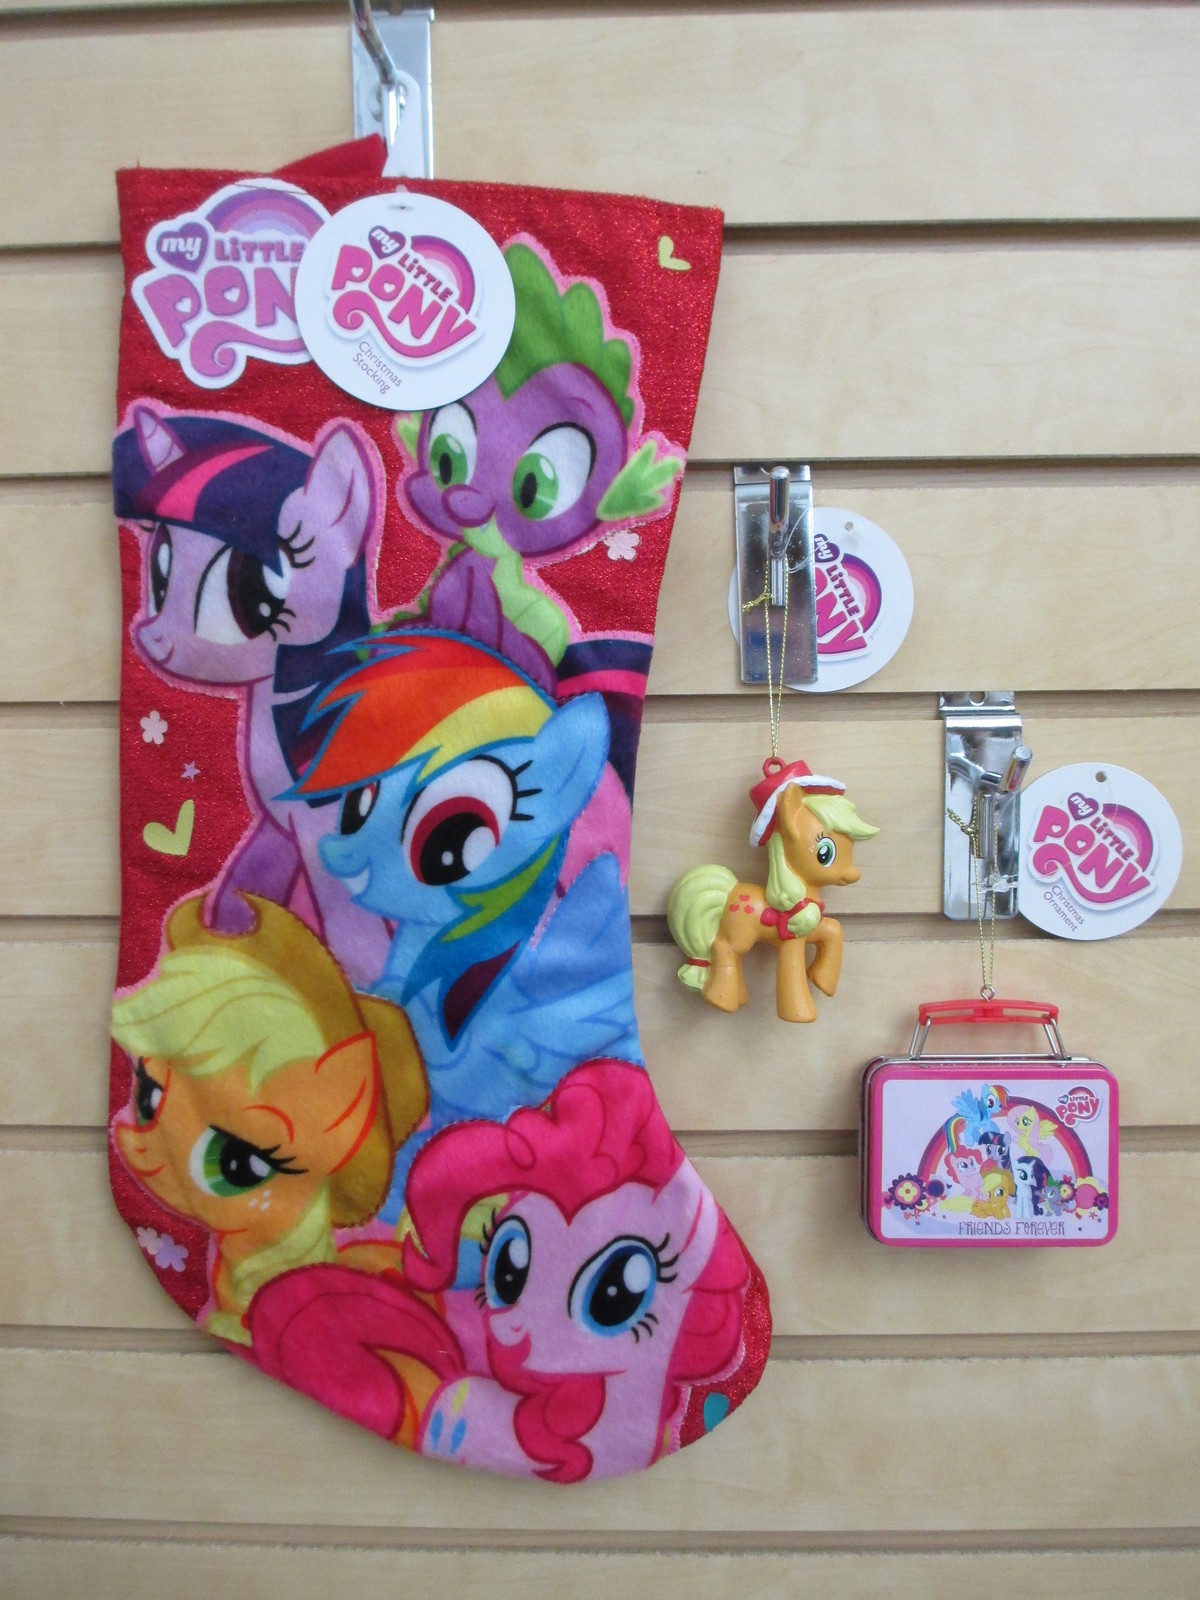 My Little Pony Christmas Stocking & Two Ornaments - Apple Jack & Mini Lunchbox